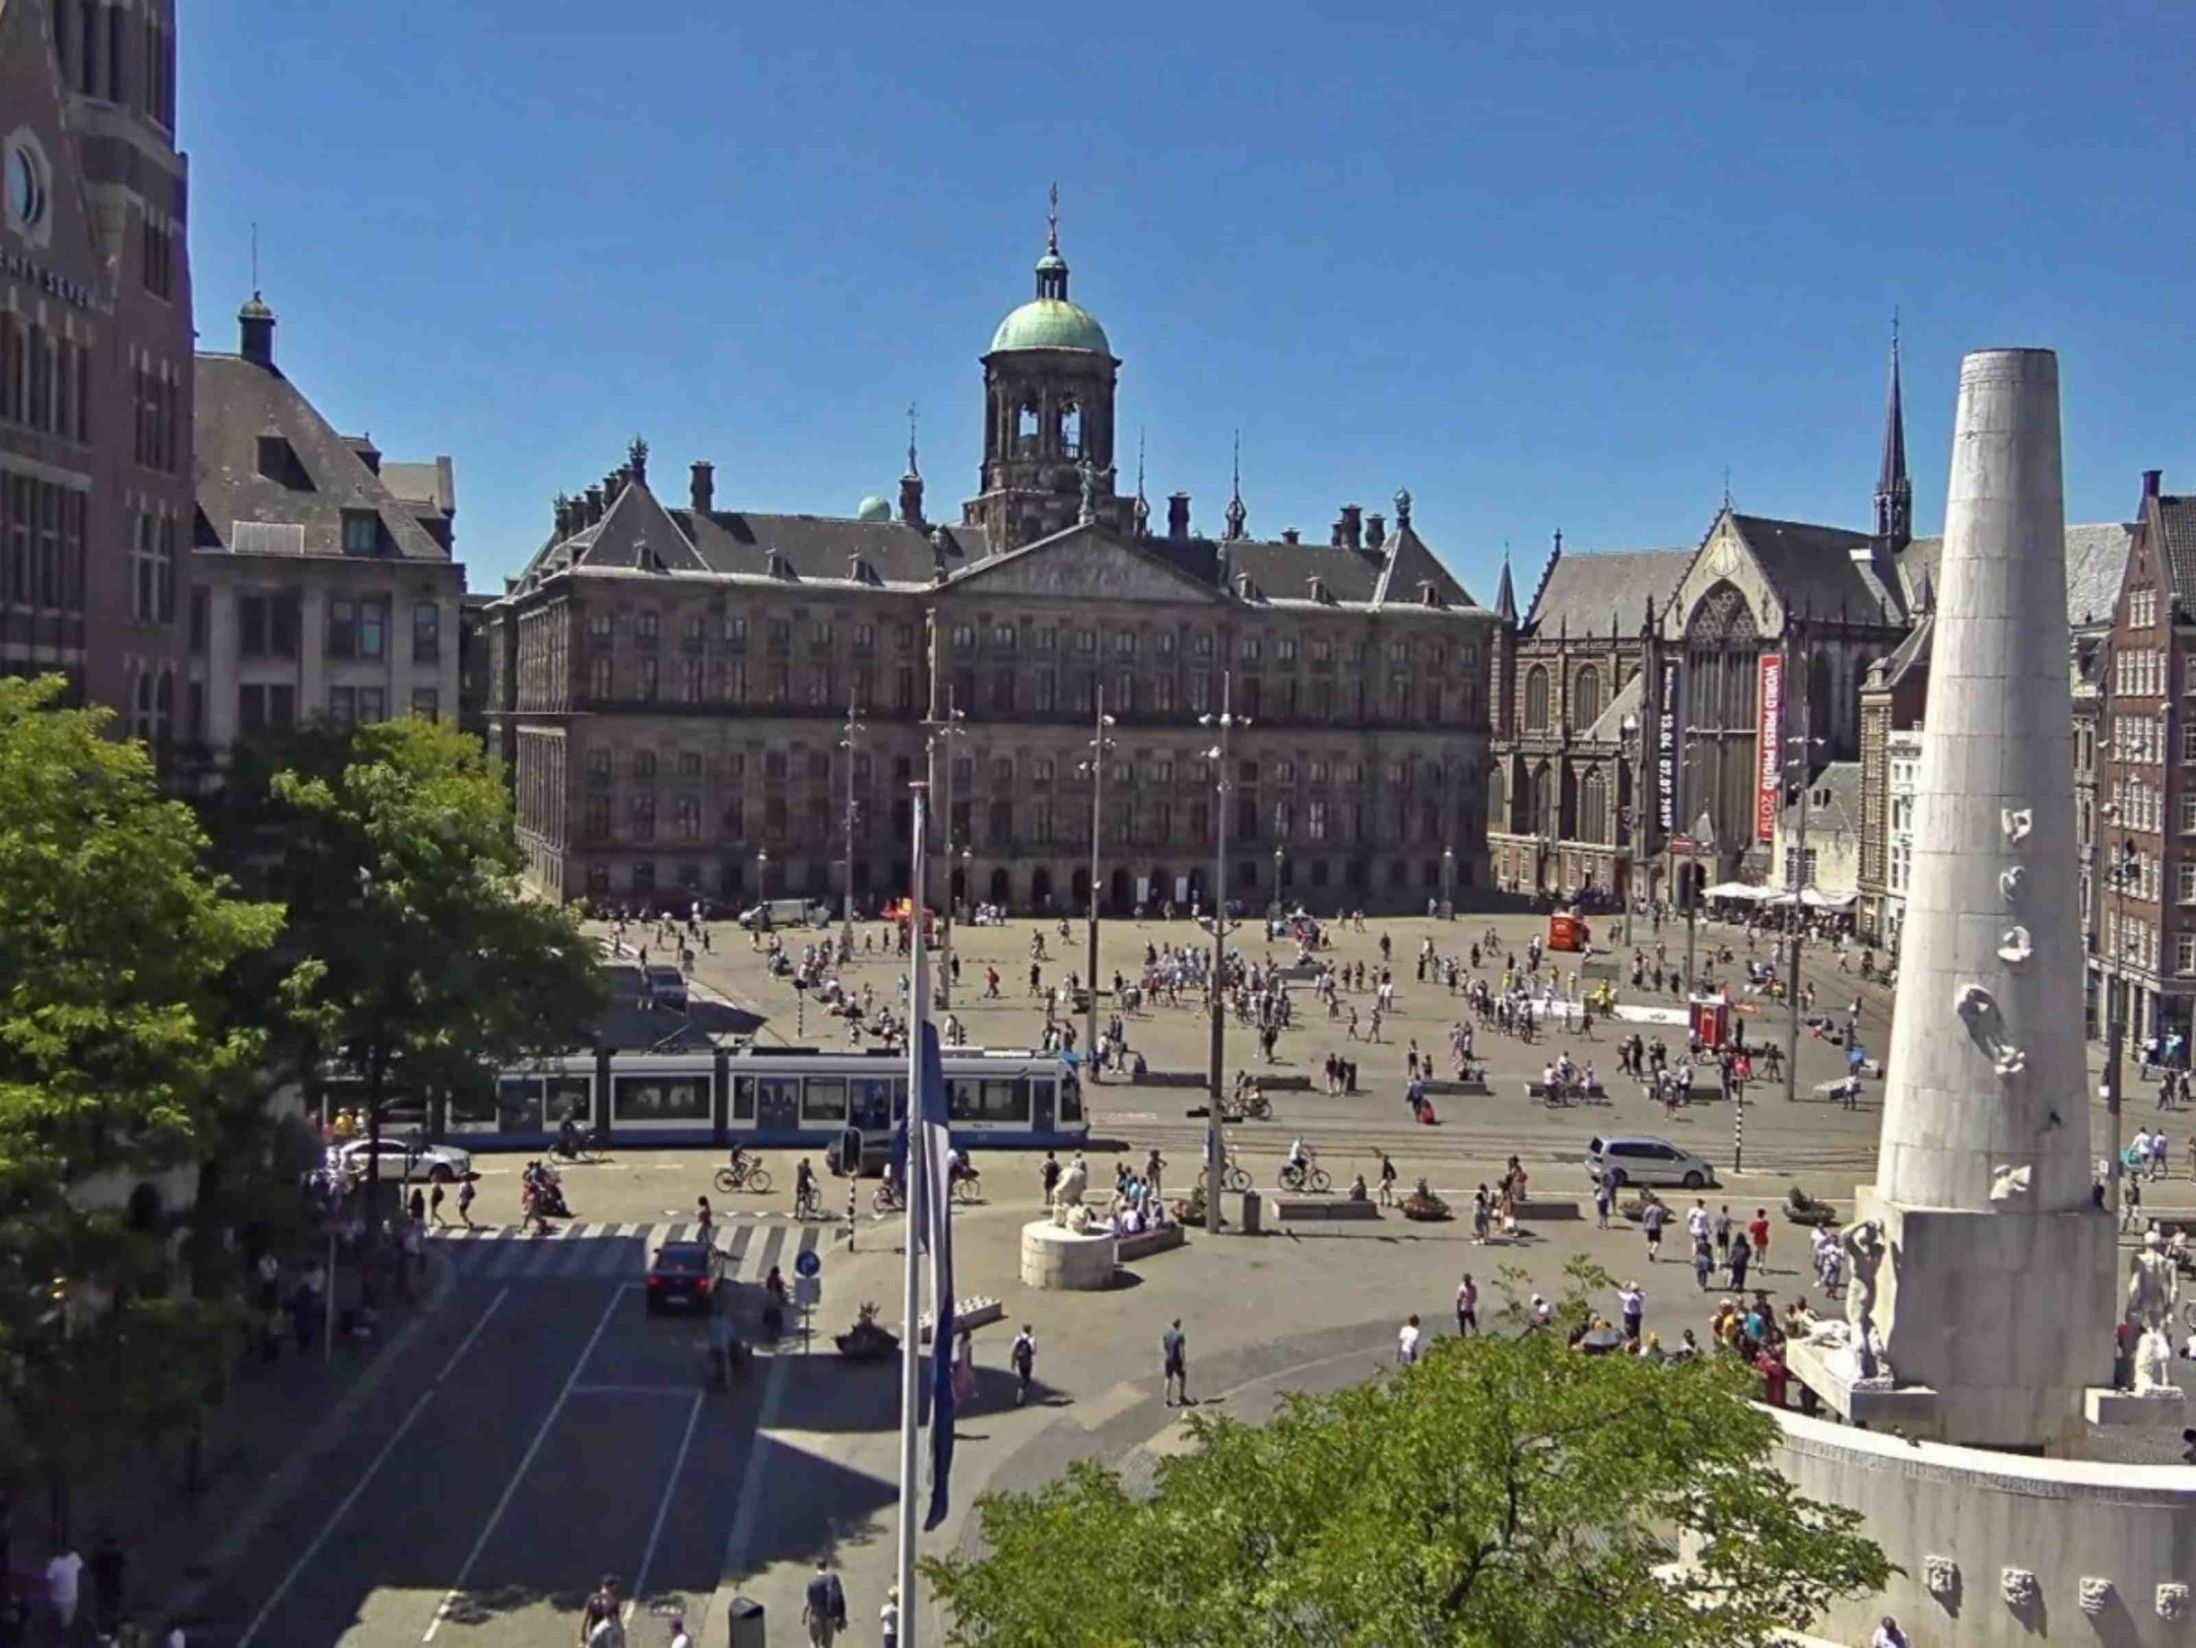 Top Attractions in Amsterdam - Royal Palace